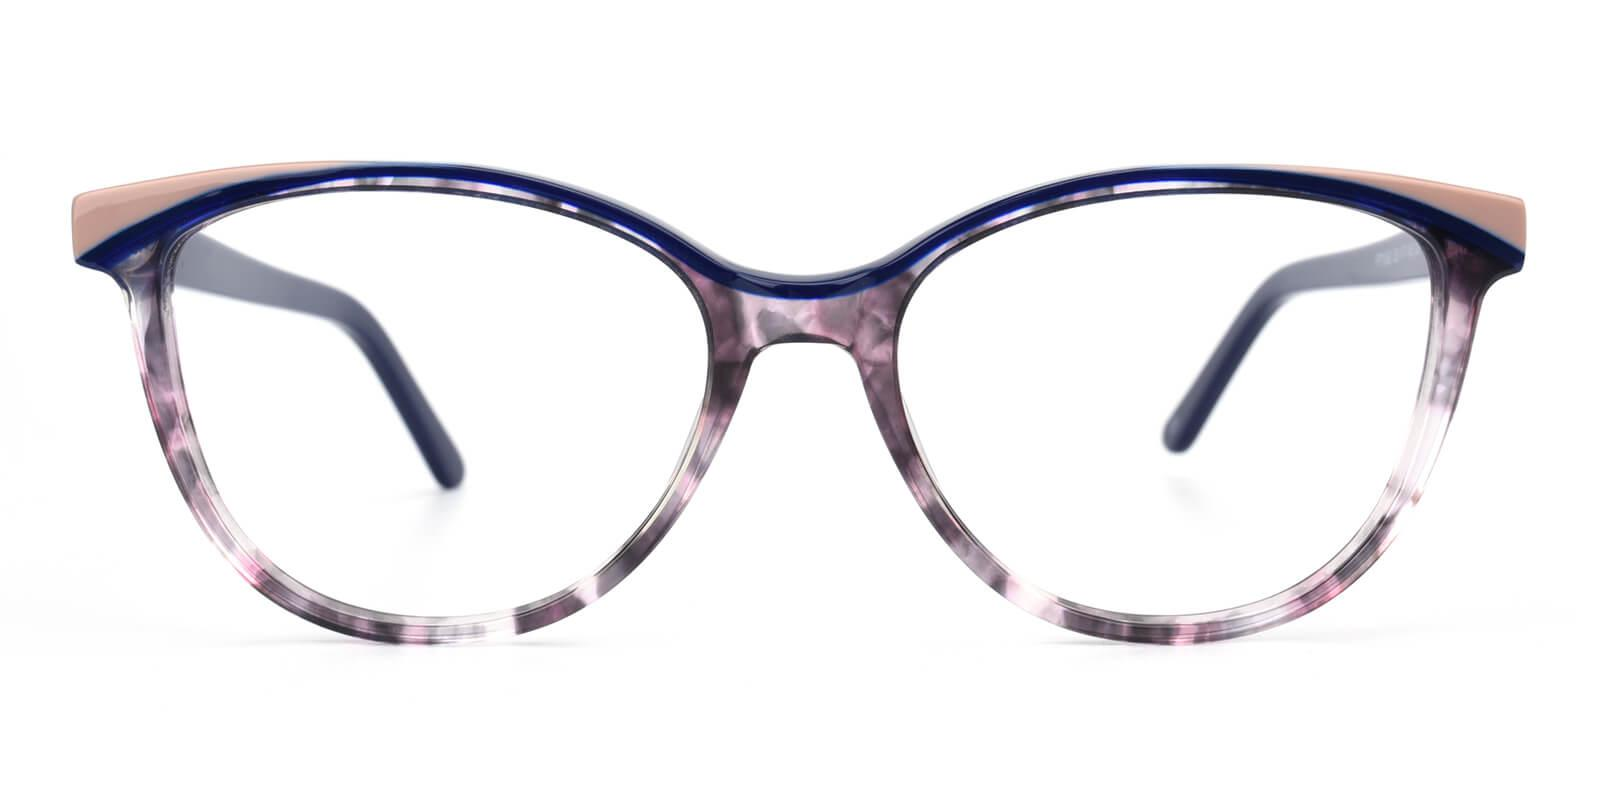 Cynthialy-Blue-Oval / Cat-Acetate-Eyeglasses-additional2